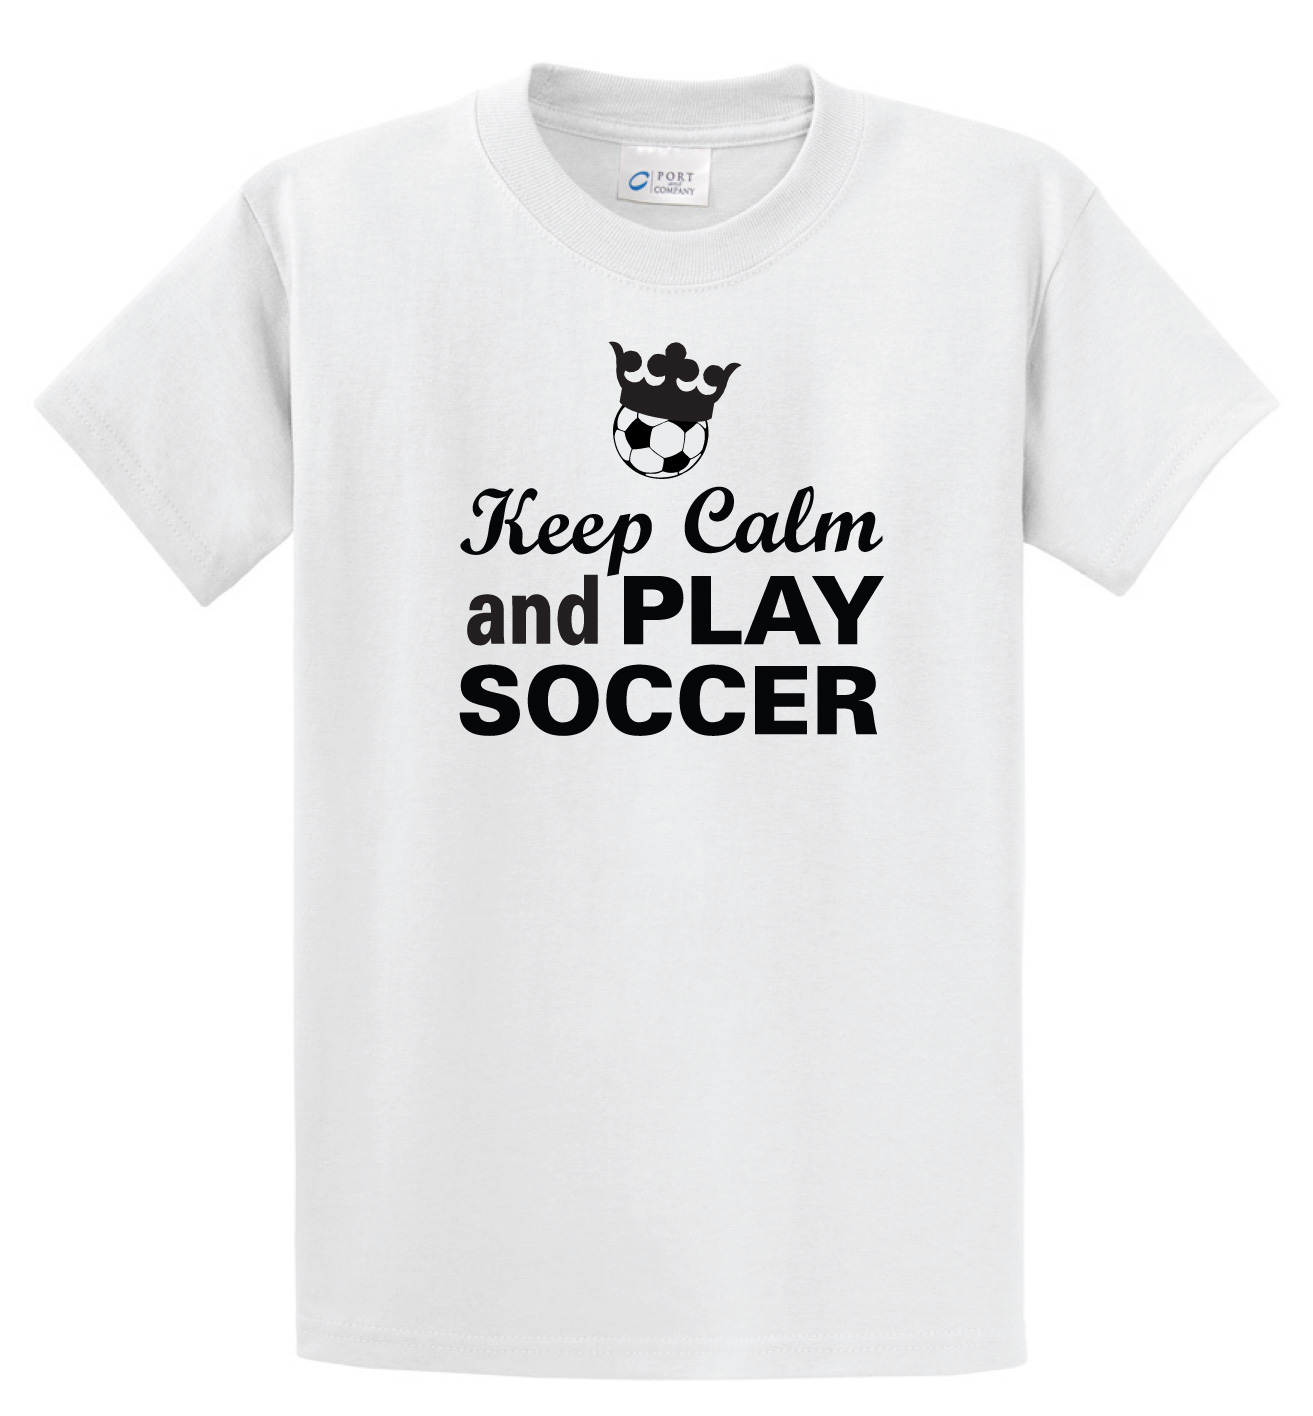 Keep Calm and Play soccer tee in white